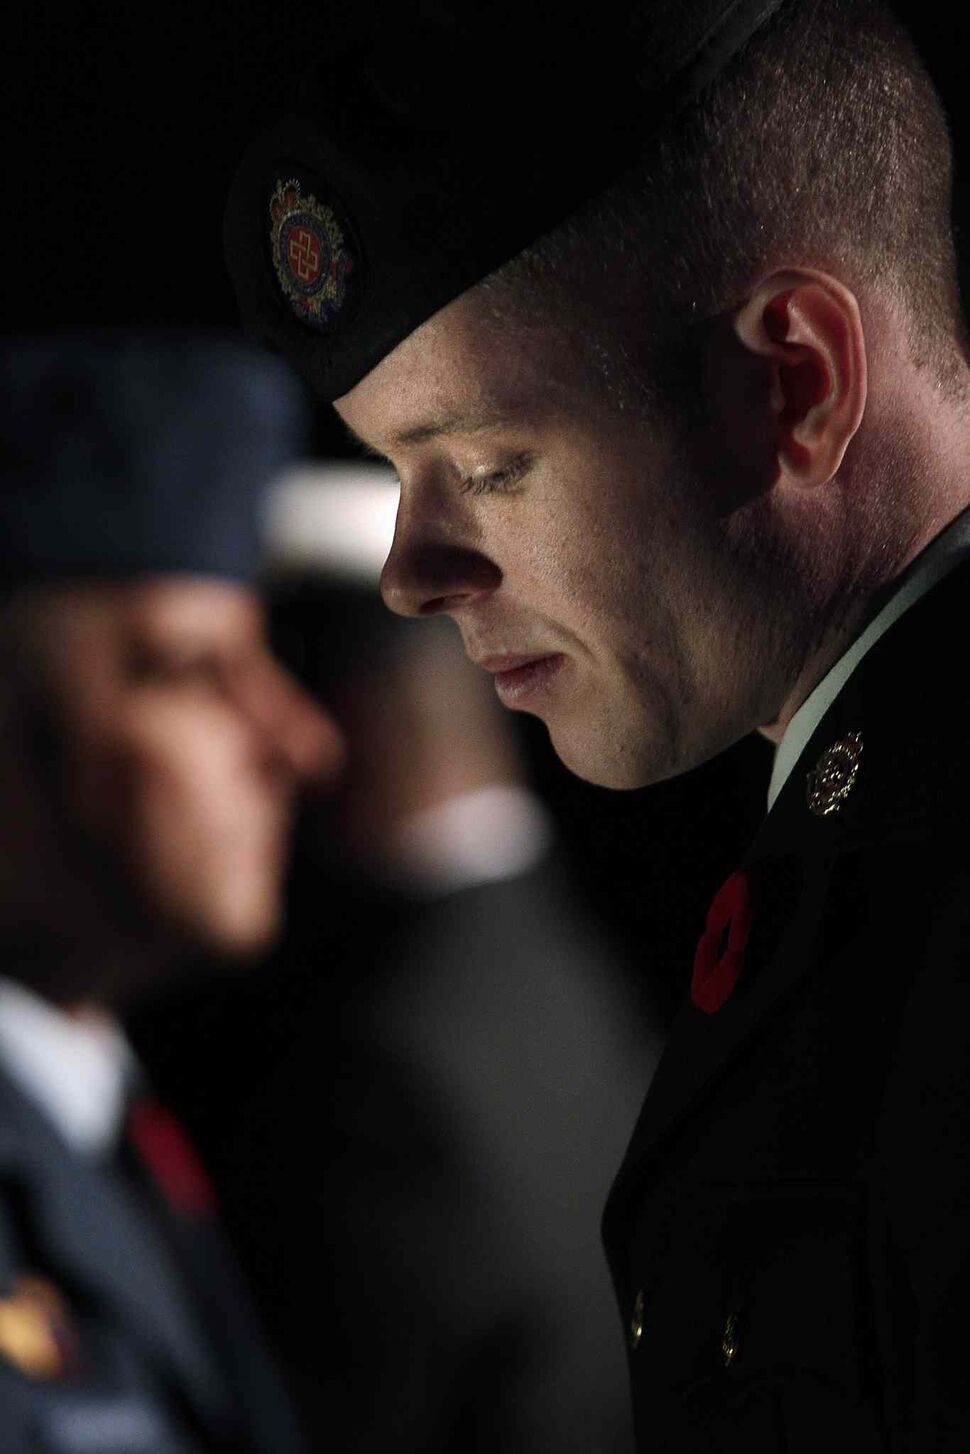 A soldier reflects during the Remembrance Day service at the RBC Convention Centre Winnipeg. (JOHN WOODS / THE CANADIAN PRESS)